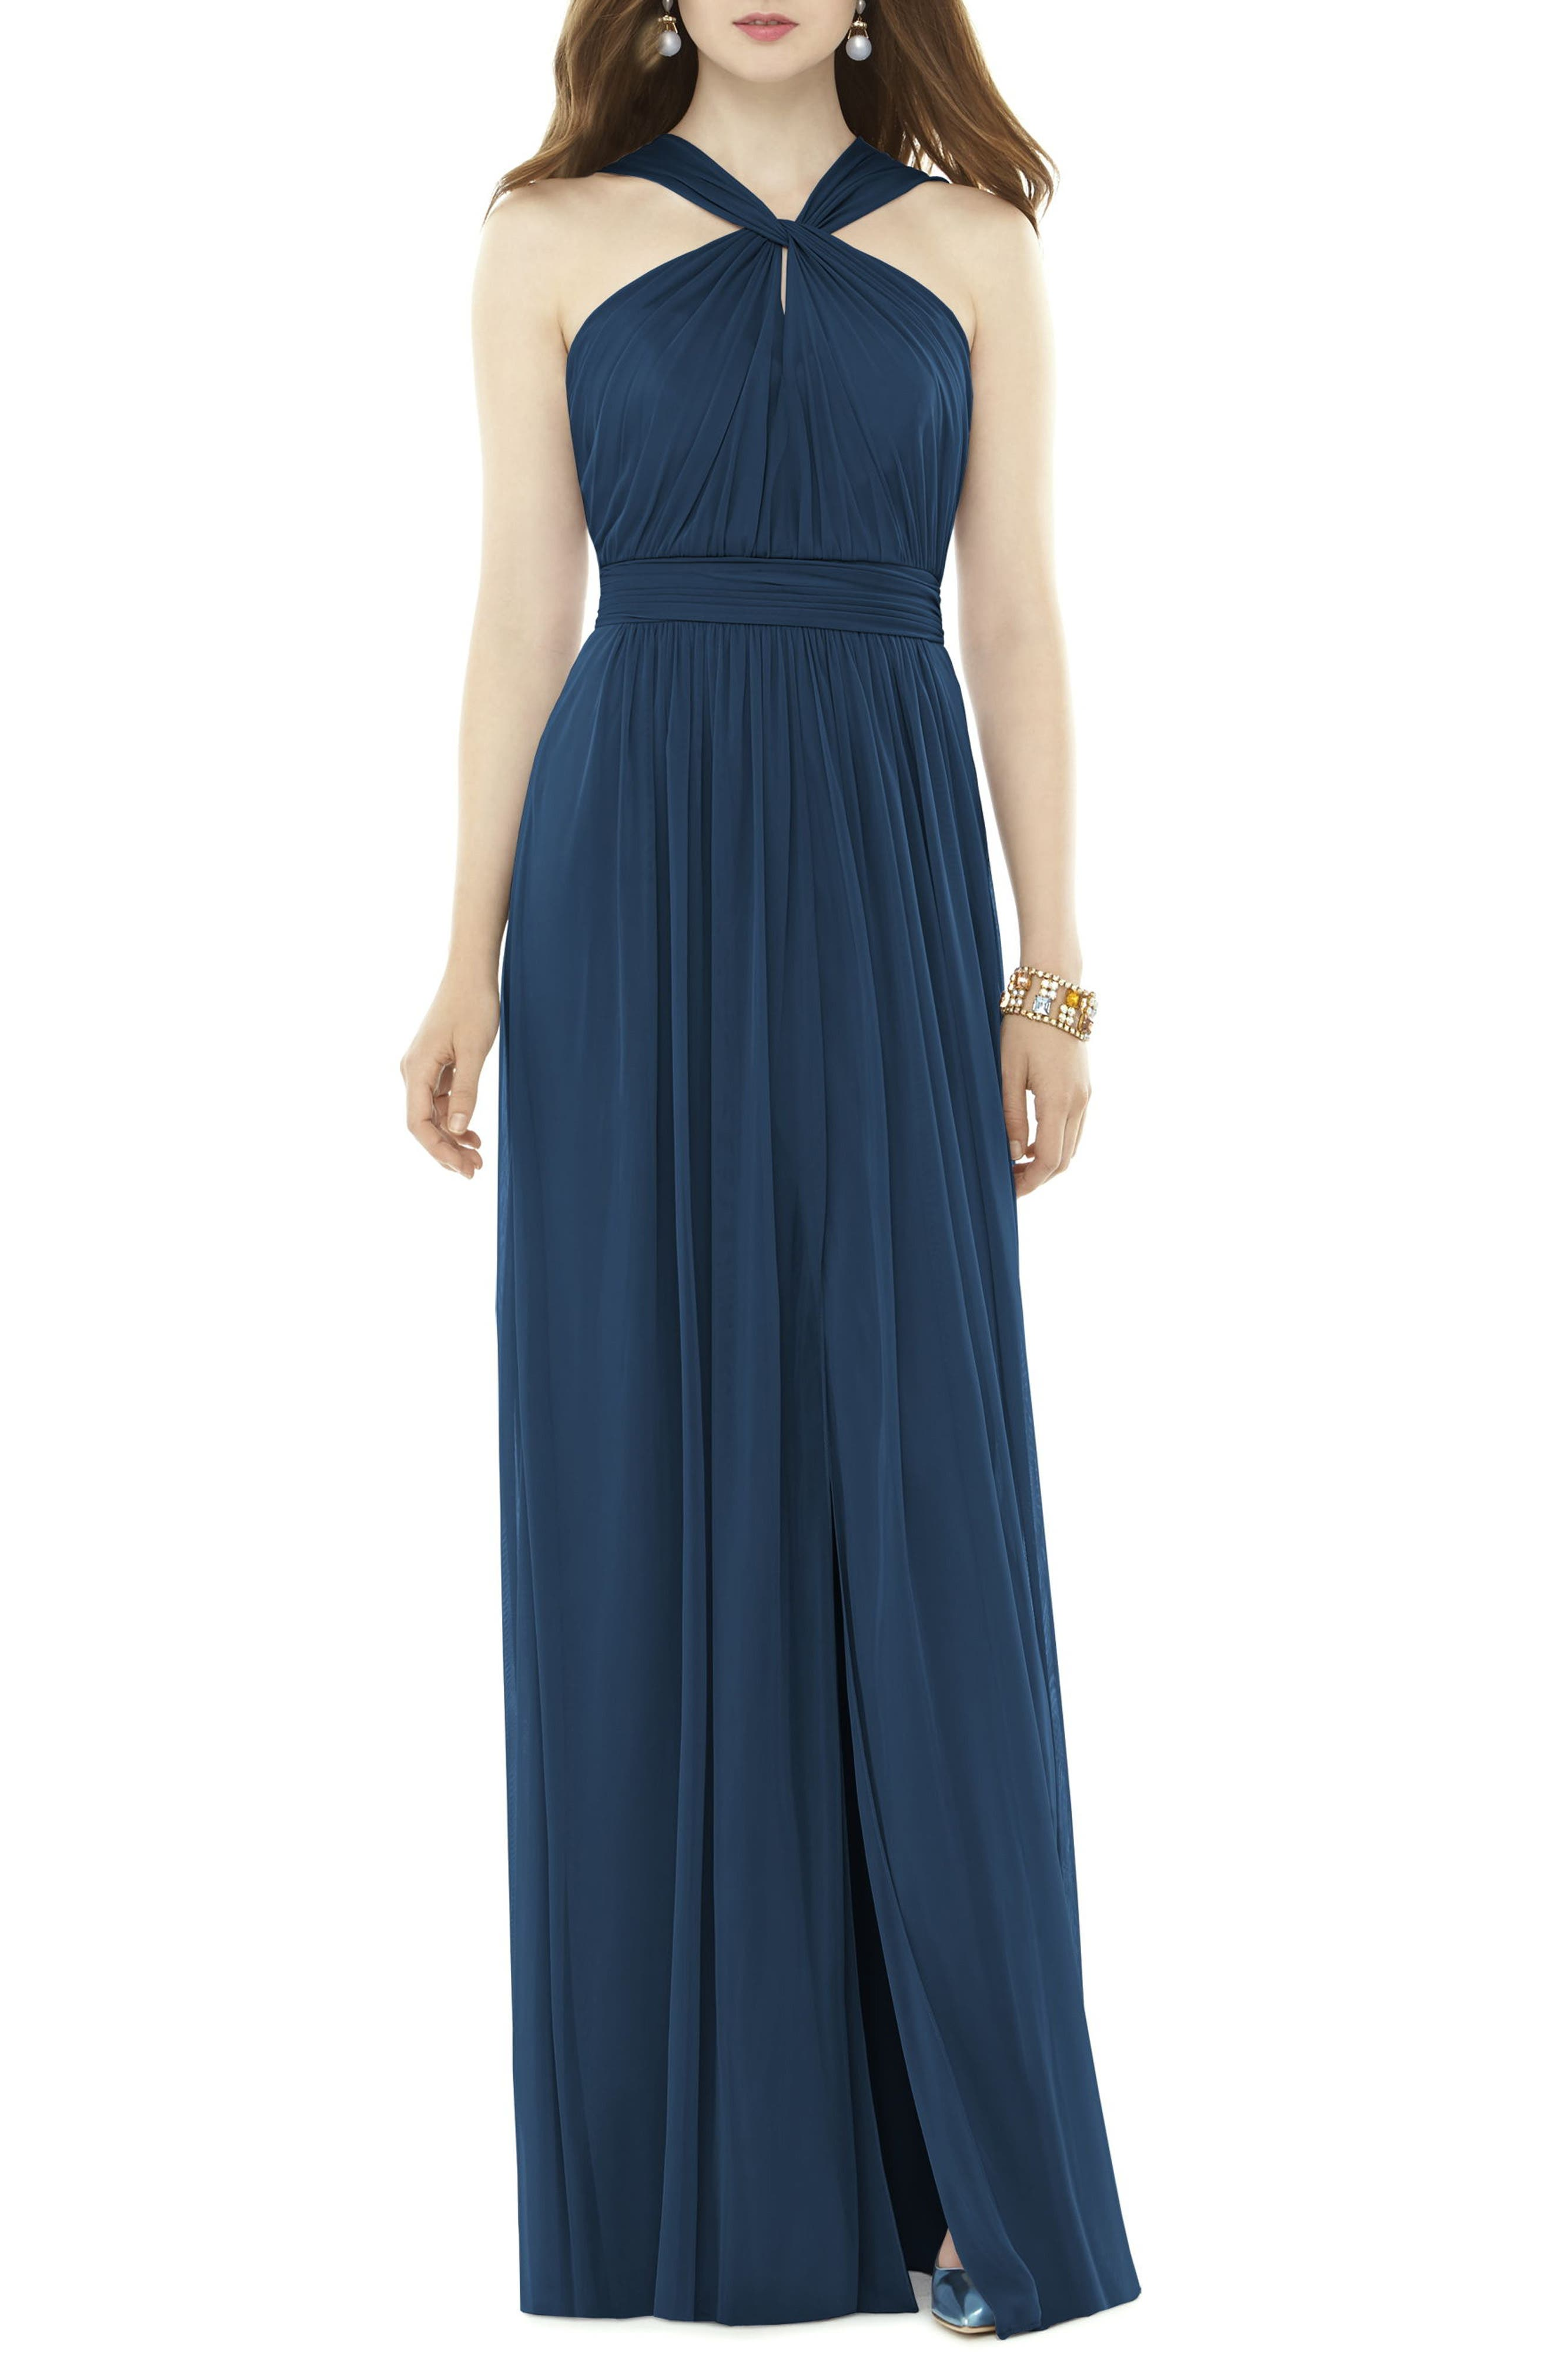 Main Image - Alfred Sung Twist Neck Chiffon Knit Gown